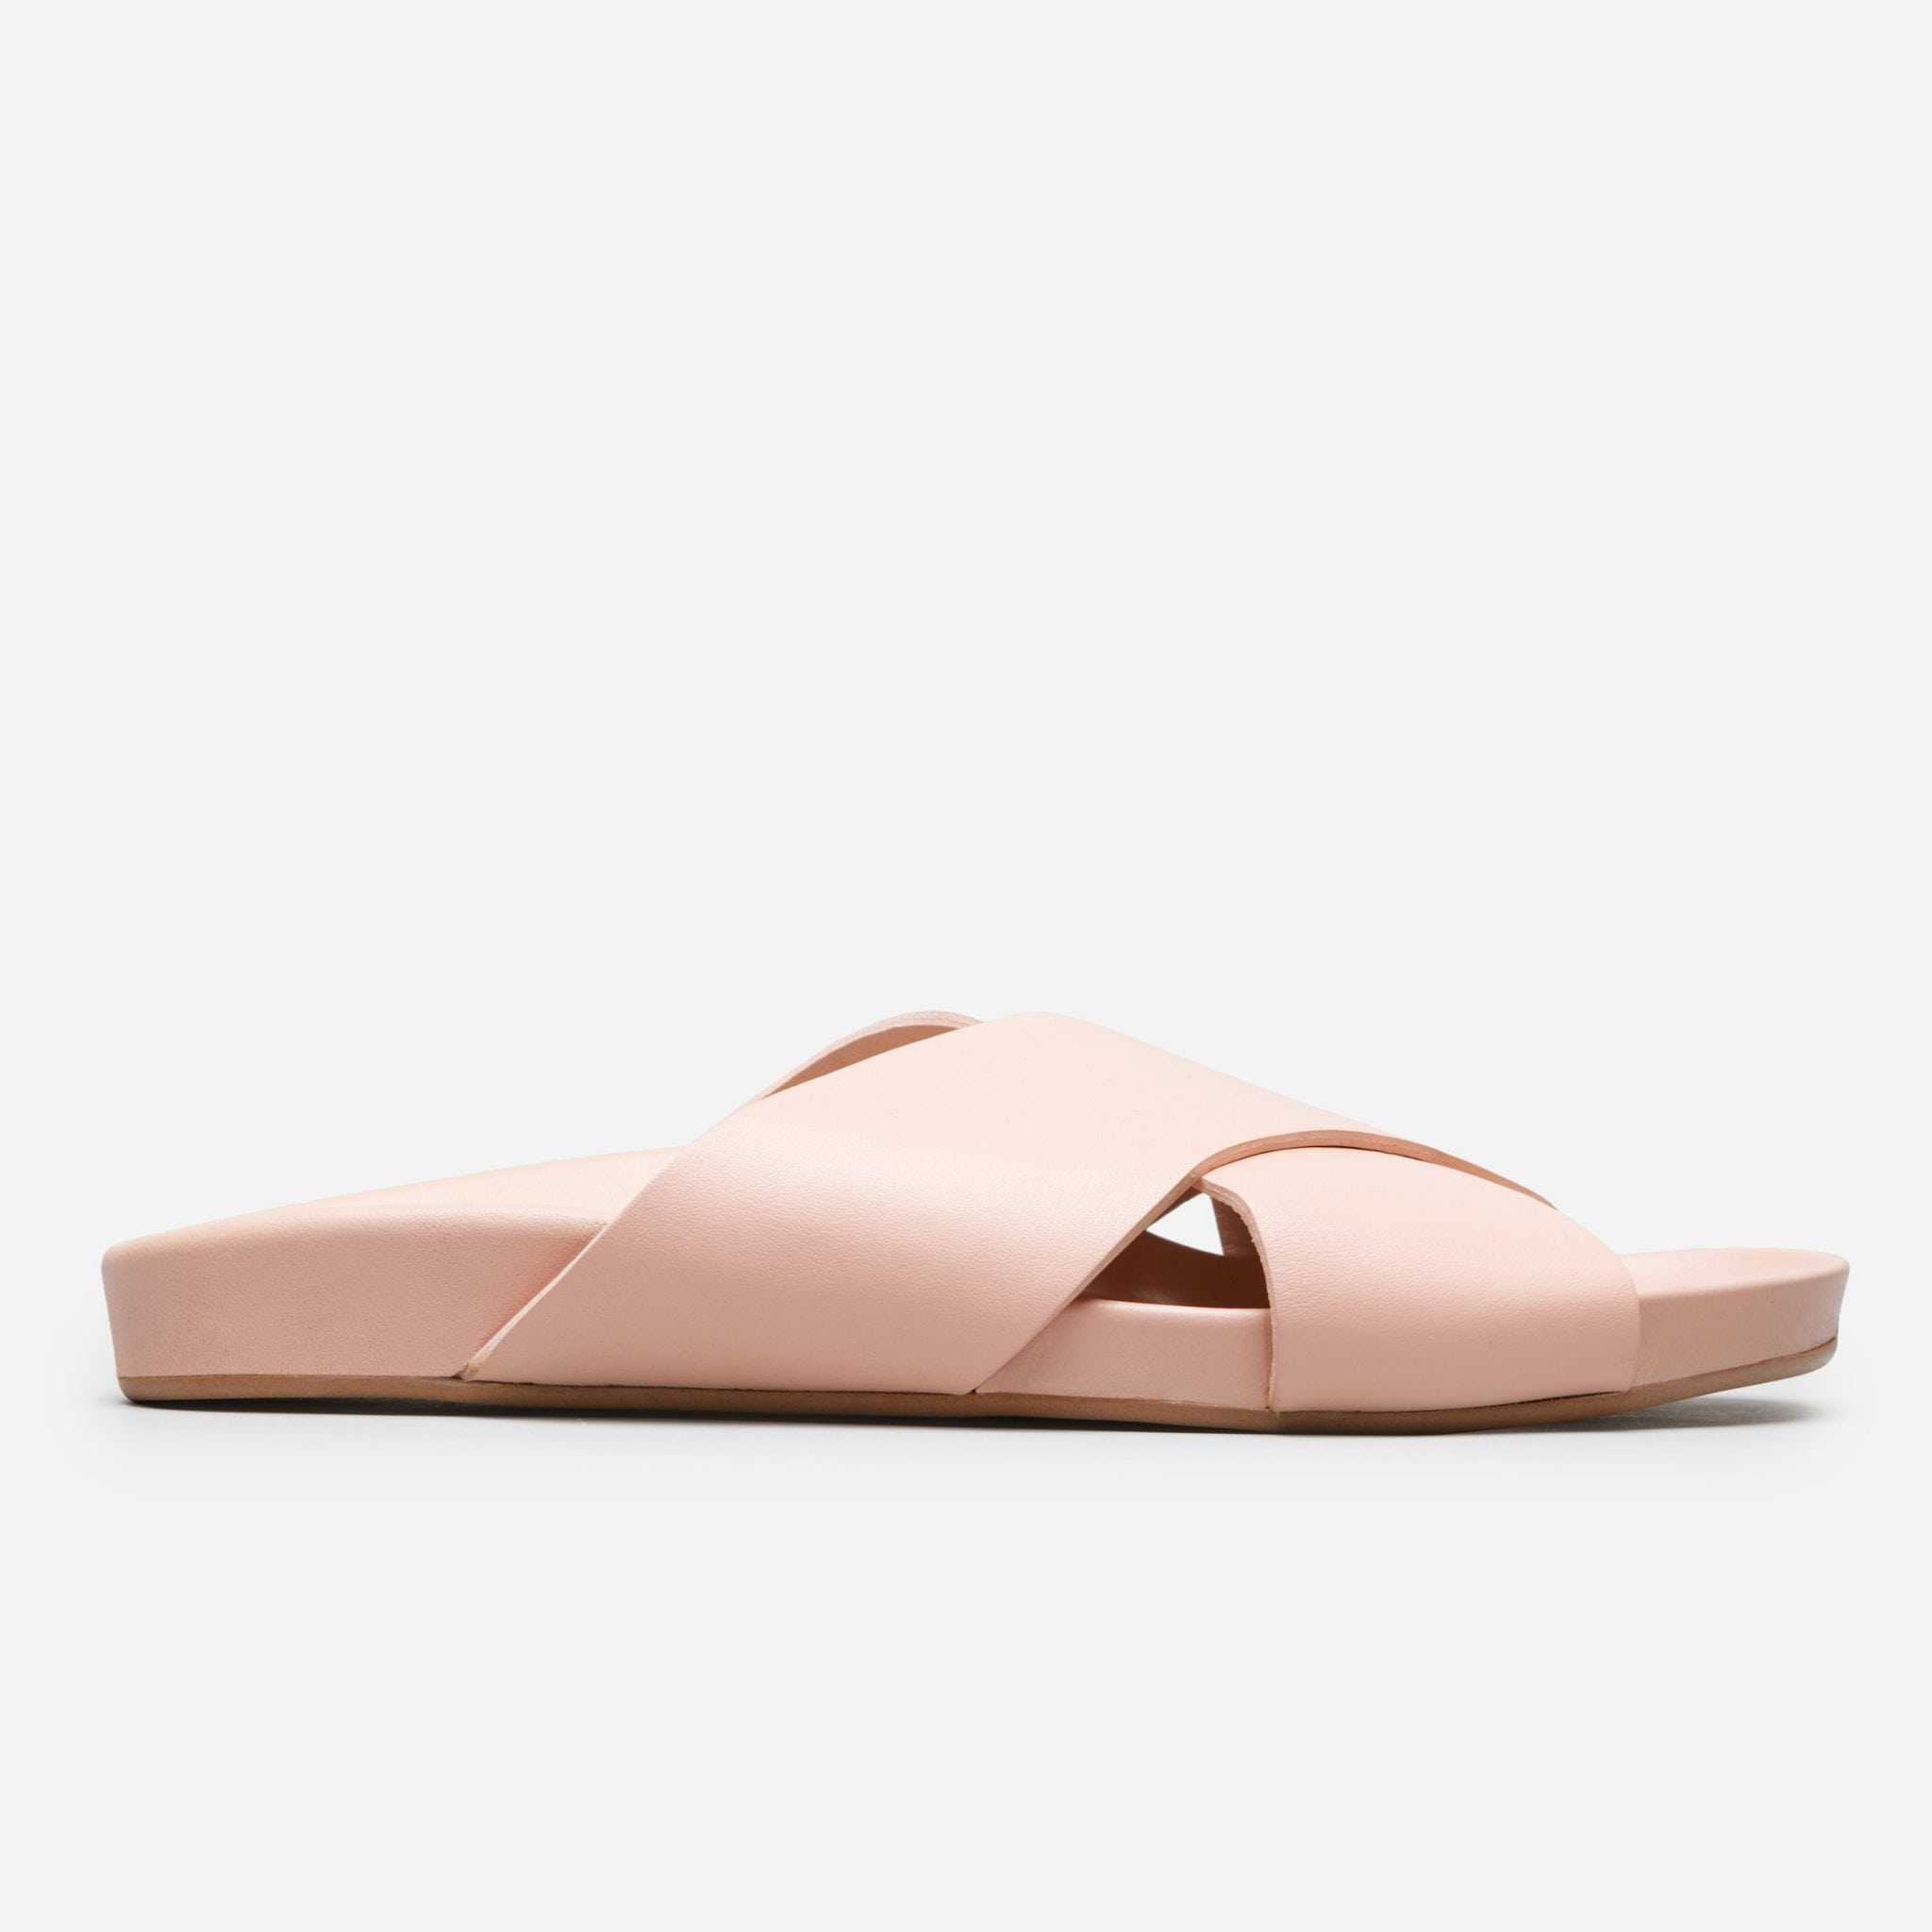 Everlane The Form Sandals - Lake Shore Lady